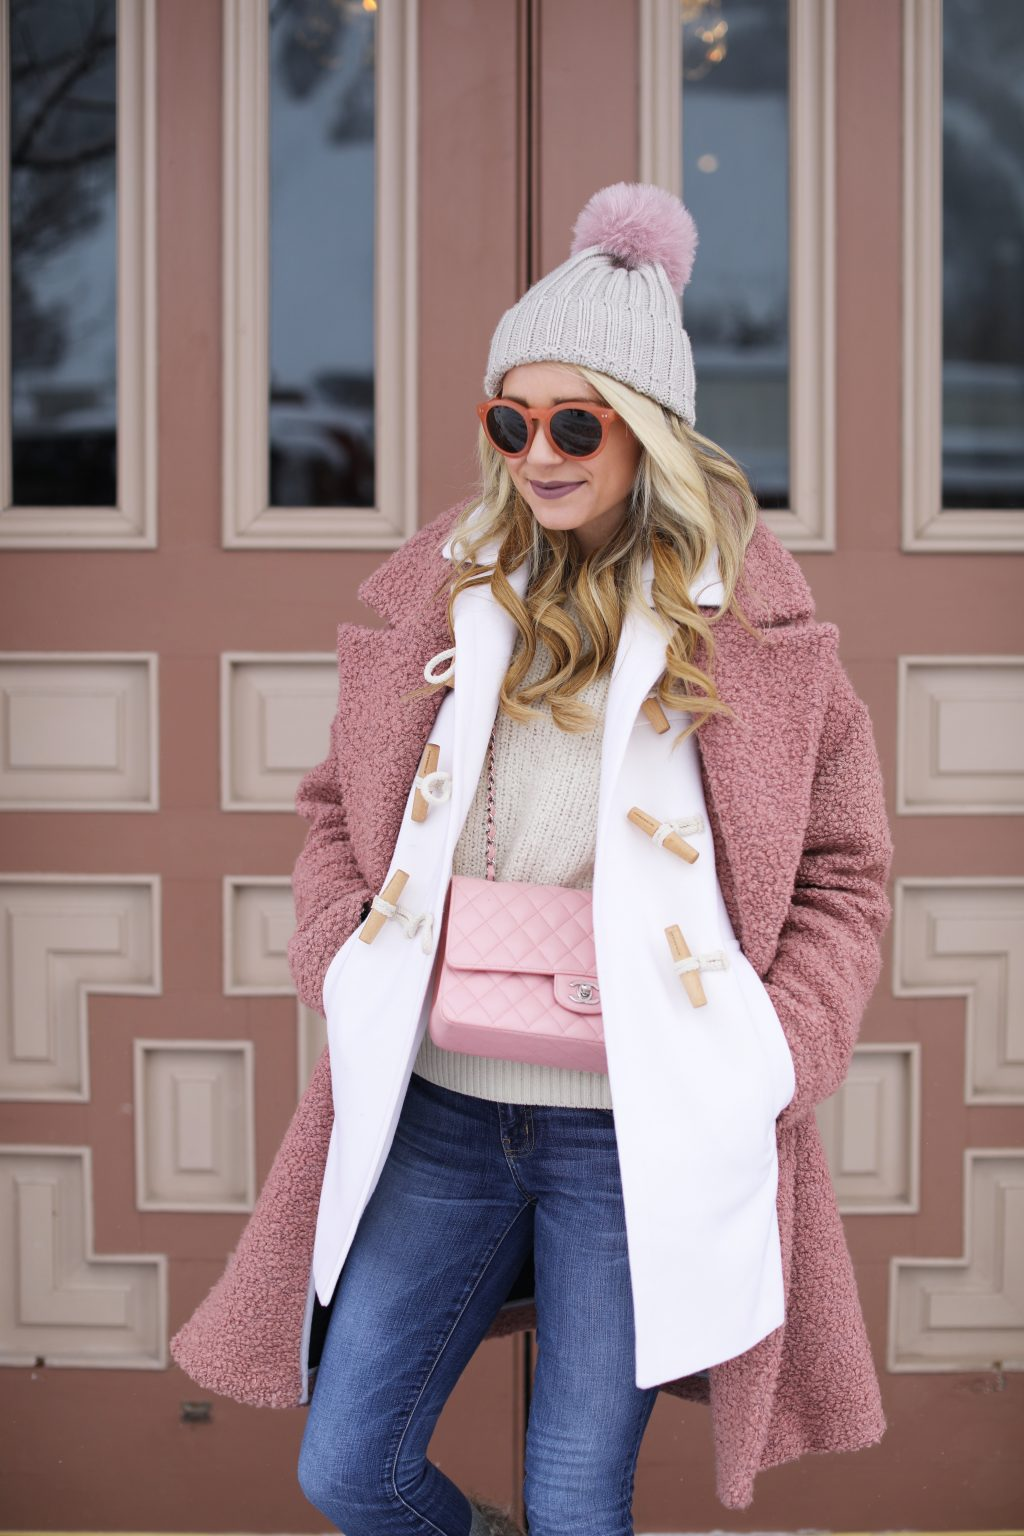 atlantic-pacific-blog-pink-blush-burberry-st-regis-apen-layering-winter-outfit